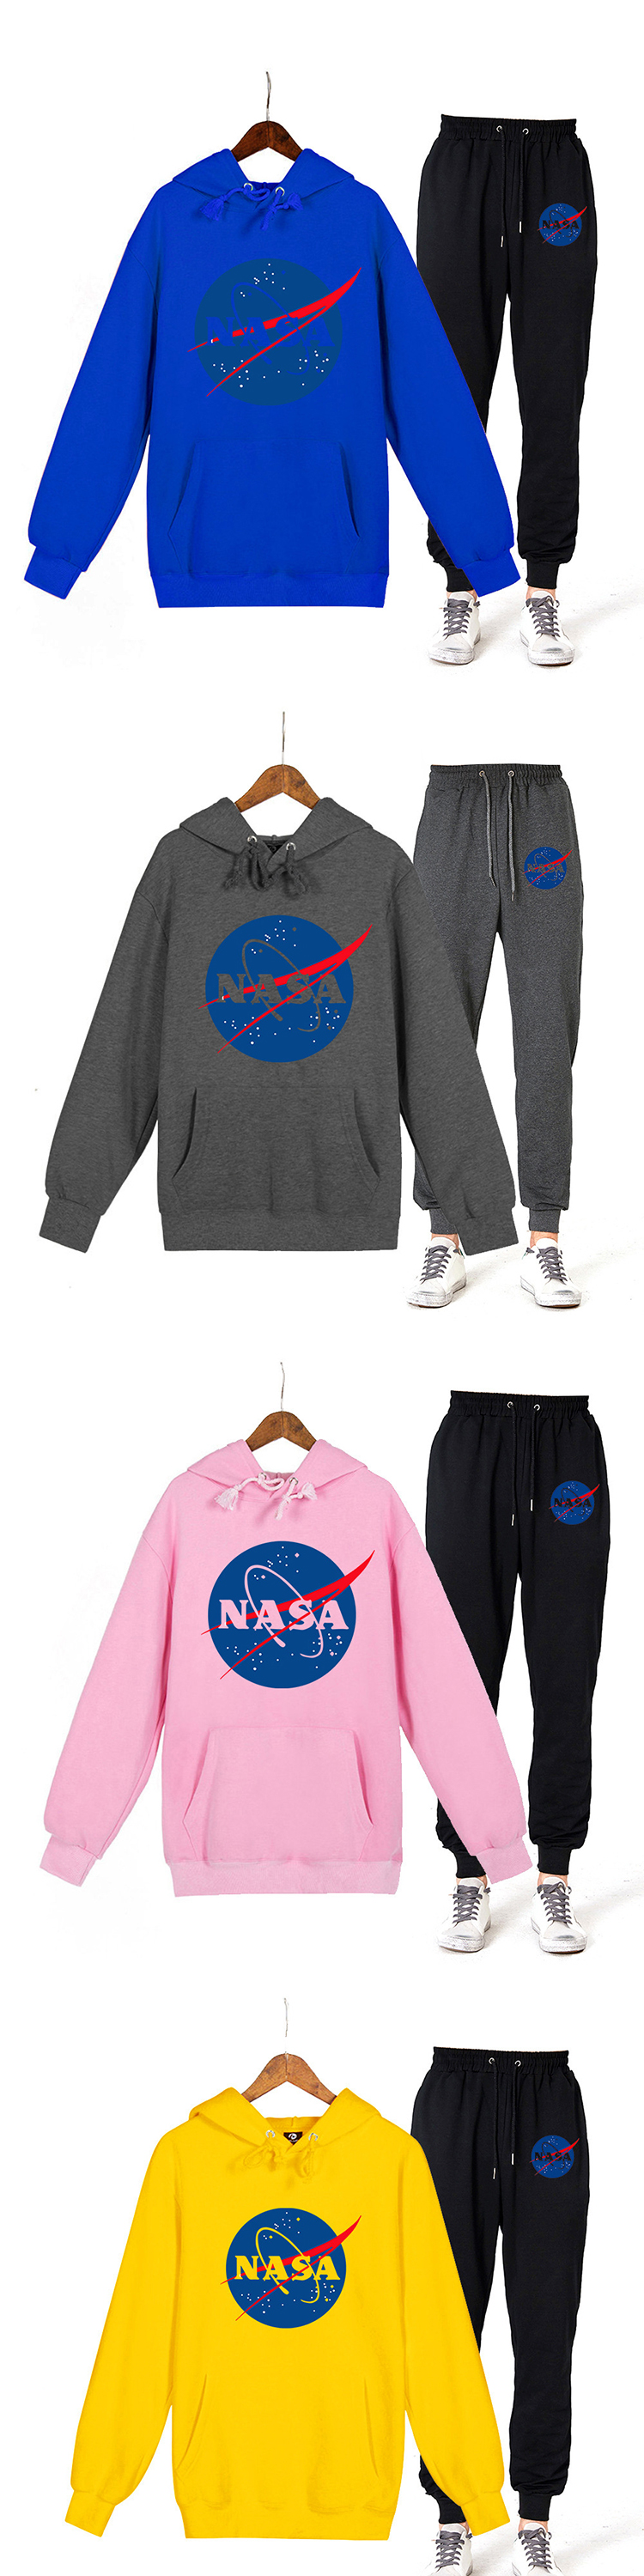 Trendy unisex couple wear polyester nasa printing 2 pieces set trousers and pullover hoodies